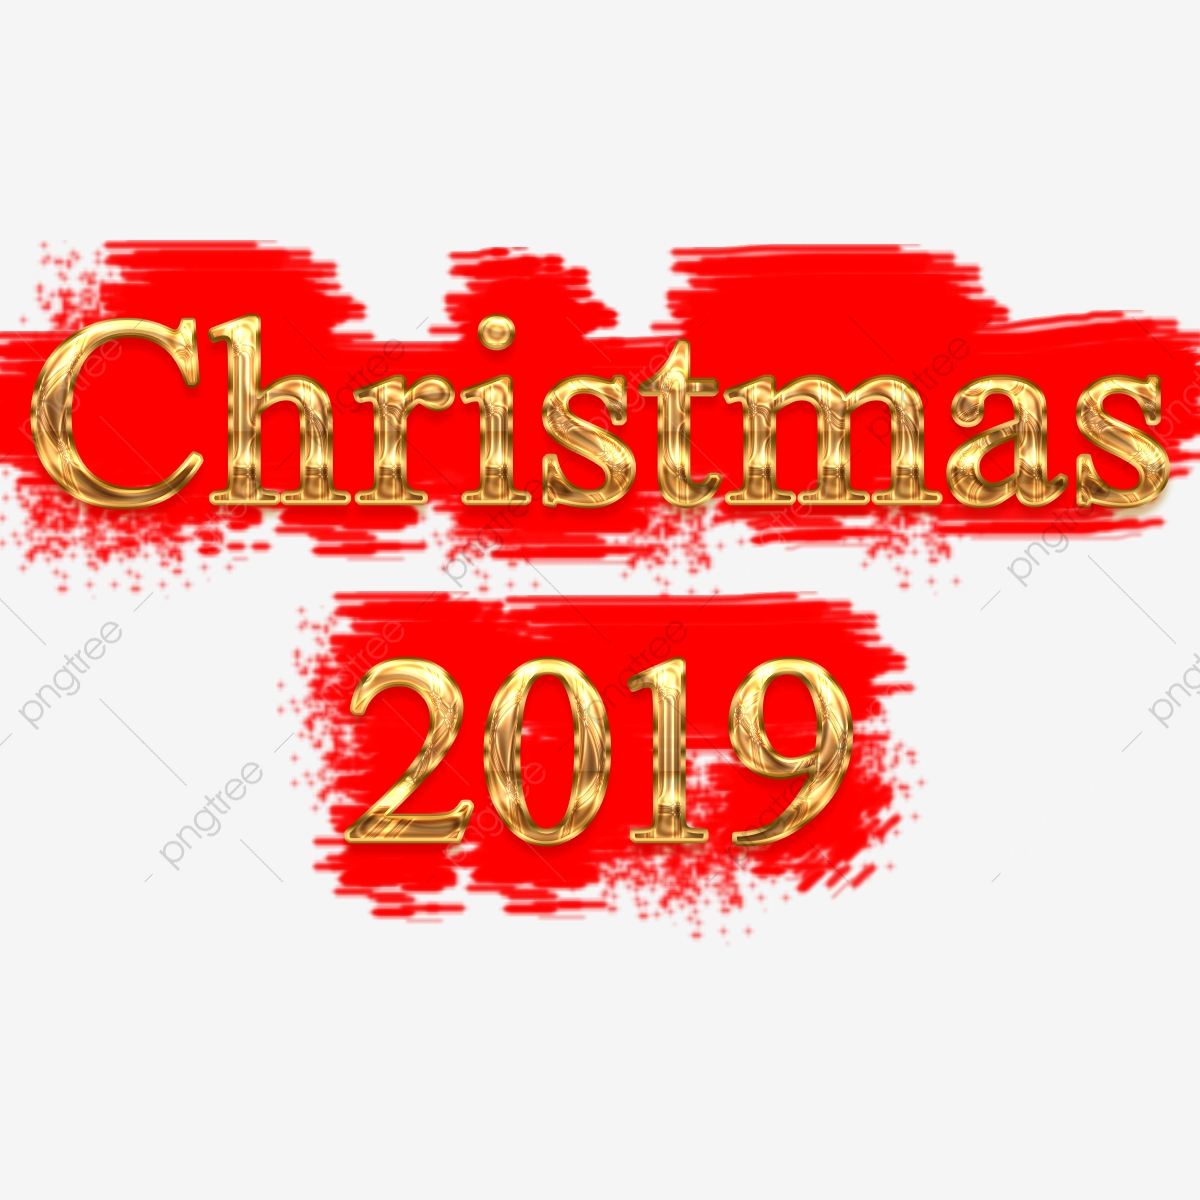 Christmas Party 2019 Clipart.Christmas Flat Minimal 2019 Christmas With Element